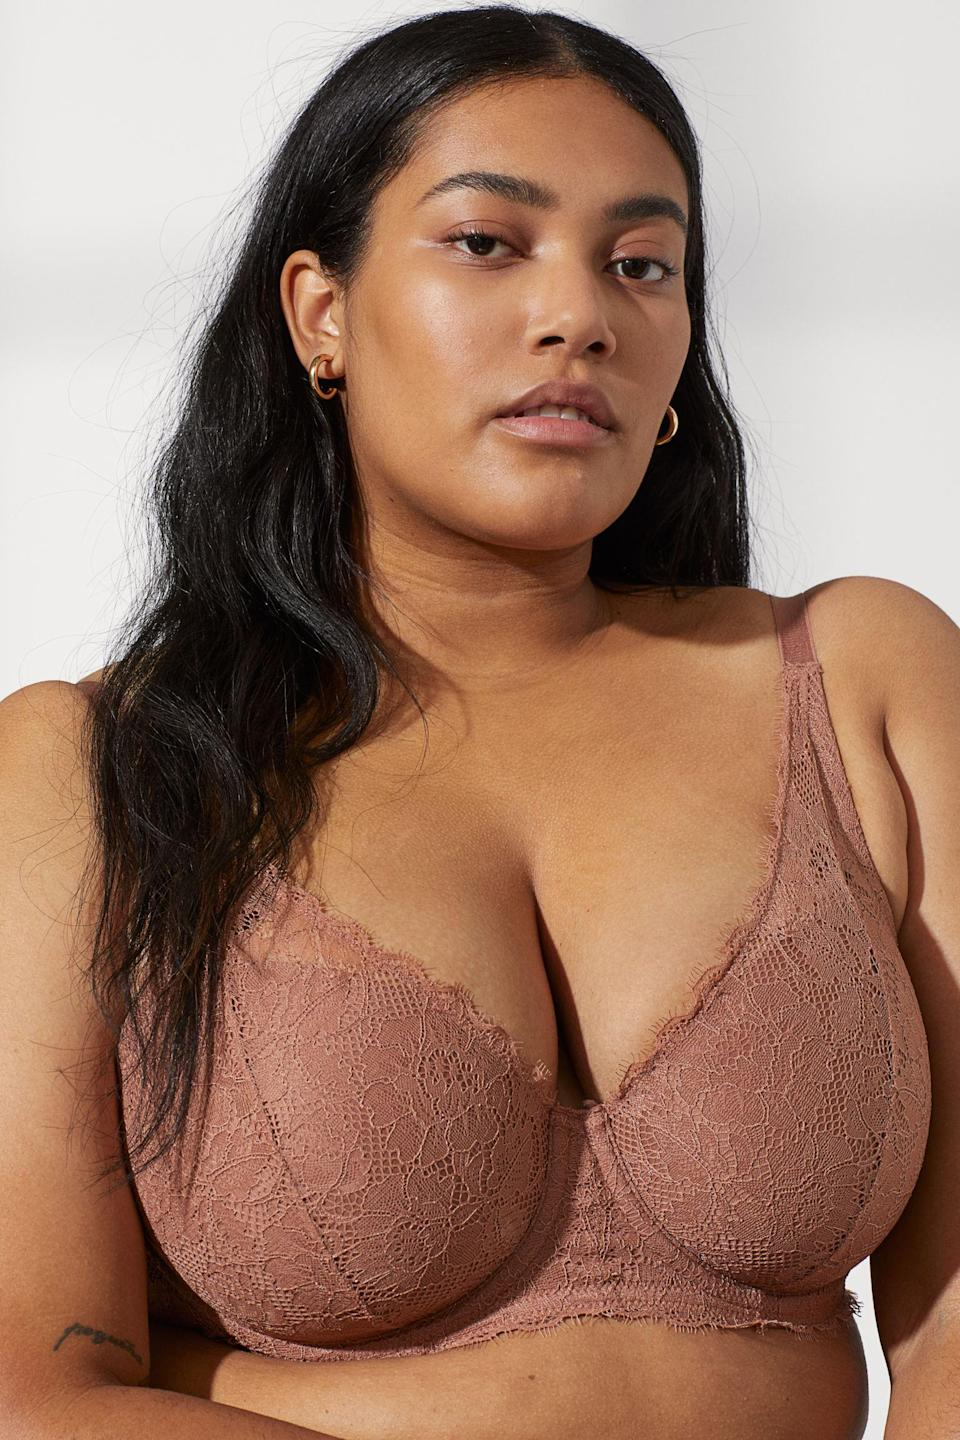 "<br><br><strong>H&M</strong> Padded Underwire Lace Bra, $, available at <a href=""https://go.skimresources.com/?id=30283X879131&url=https%3A%2F%2Fwww2.hm.com%2Fen_us%2Fproductpage.0639965005.html"" rel=""nofollow noopener"" target=""_blank"" data-ylk=""slk:H&M"" class=""link rapid-noclick-resp"">H&M</a>"